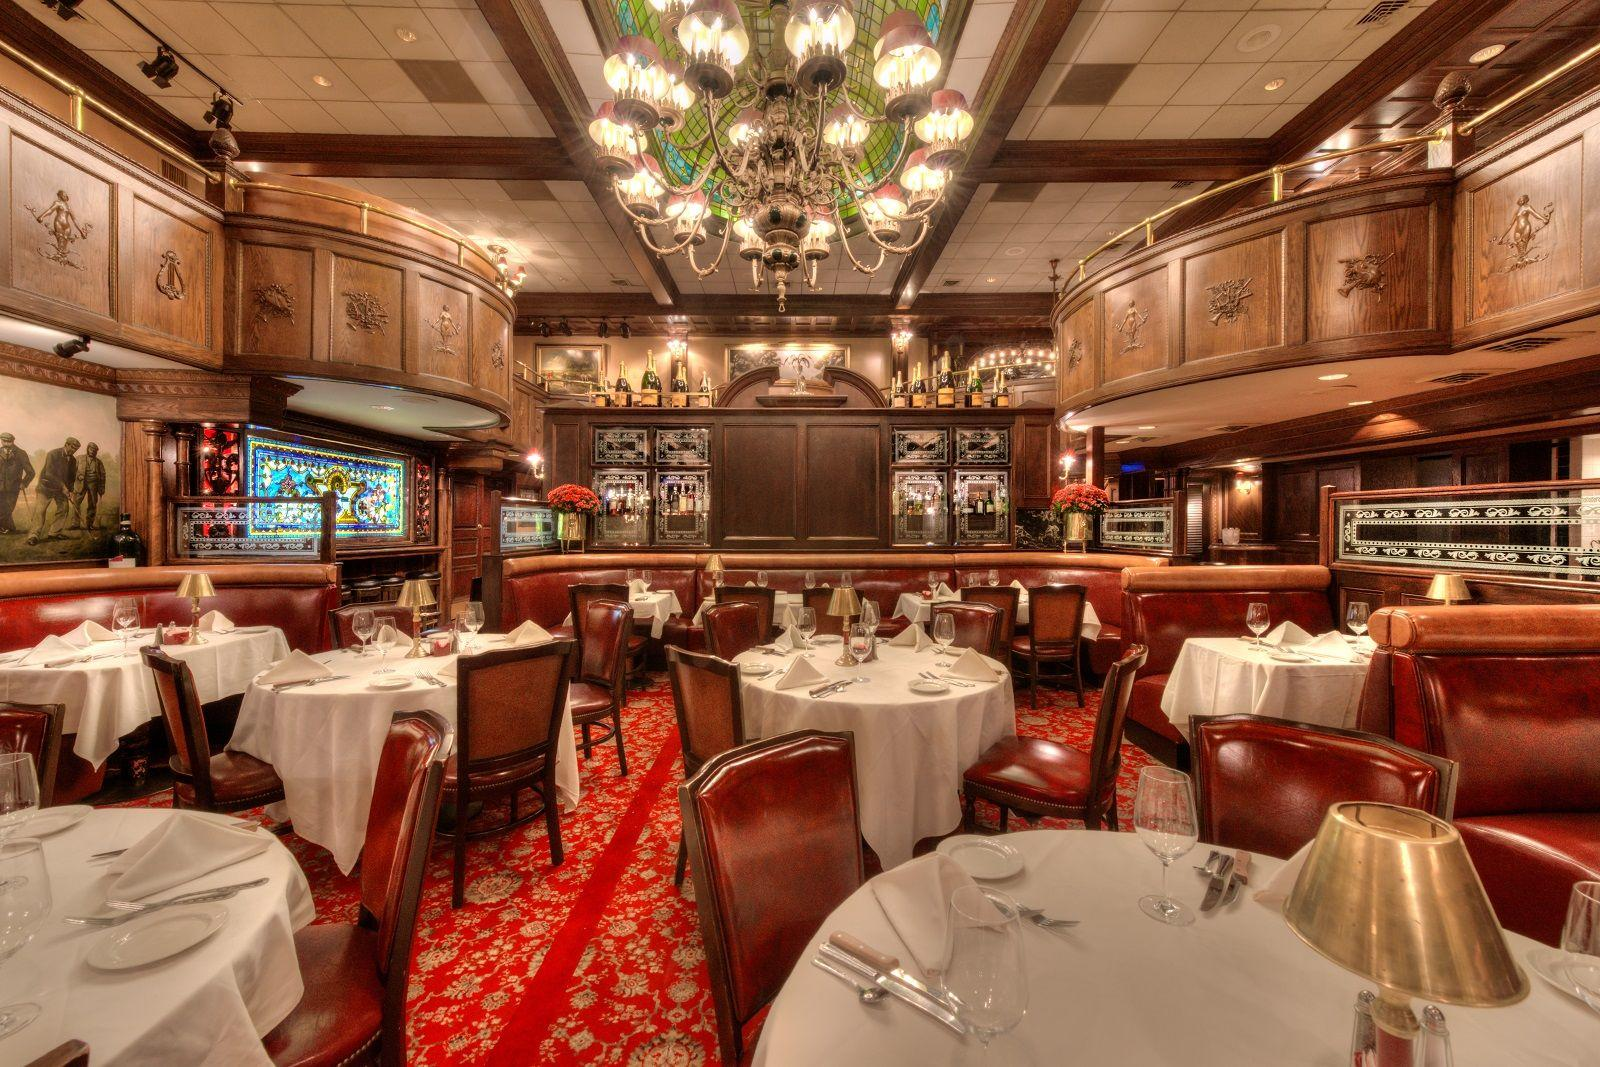 Spacious seating at Rod's Steakhouse